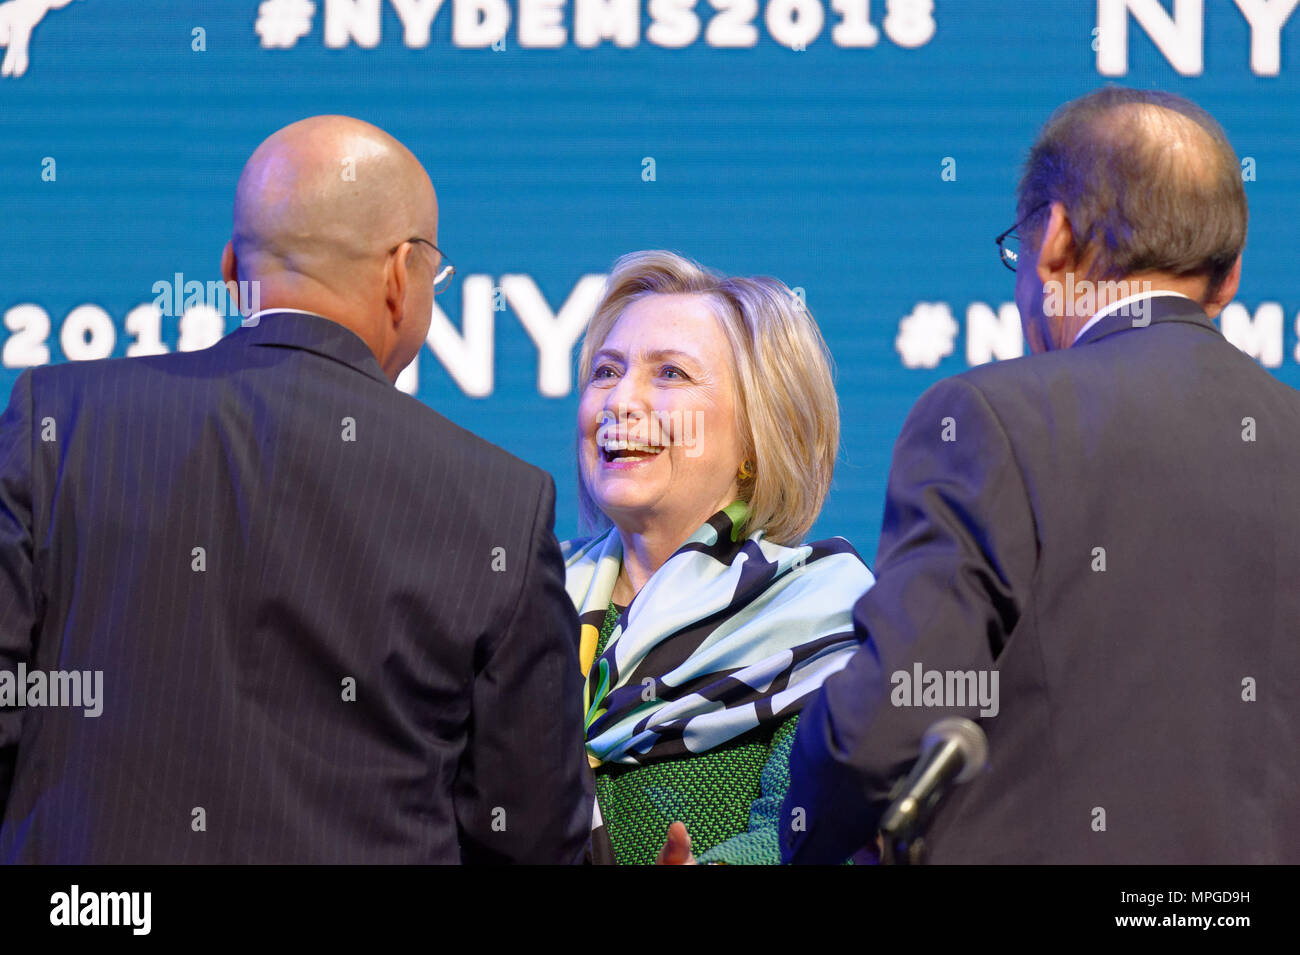 Hempstead, New York, USA. 23rd May, 2018. HILLARY CLINTON greets GEOFF BERMAN, Executive Director of New York State Democratic Committee, as she goes on stage to deliver Keynote Address during Day 1 of New York State Democratic Convention, held at Hofstra University on Long Island. Clinton, the former First Lady and NYS Senator, endorsed the re-election of Gov. A. Cuomo for a third term, and mentioned how Hofstra was the site of her first 2016 debate with Trump. Credit: Ann Parry/ZUMA Wire/Alamy Live News - Stock Image